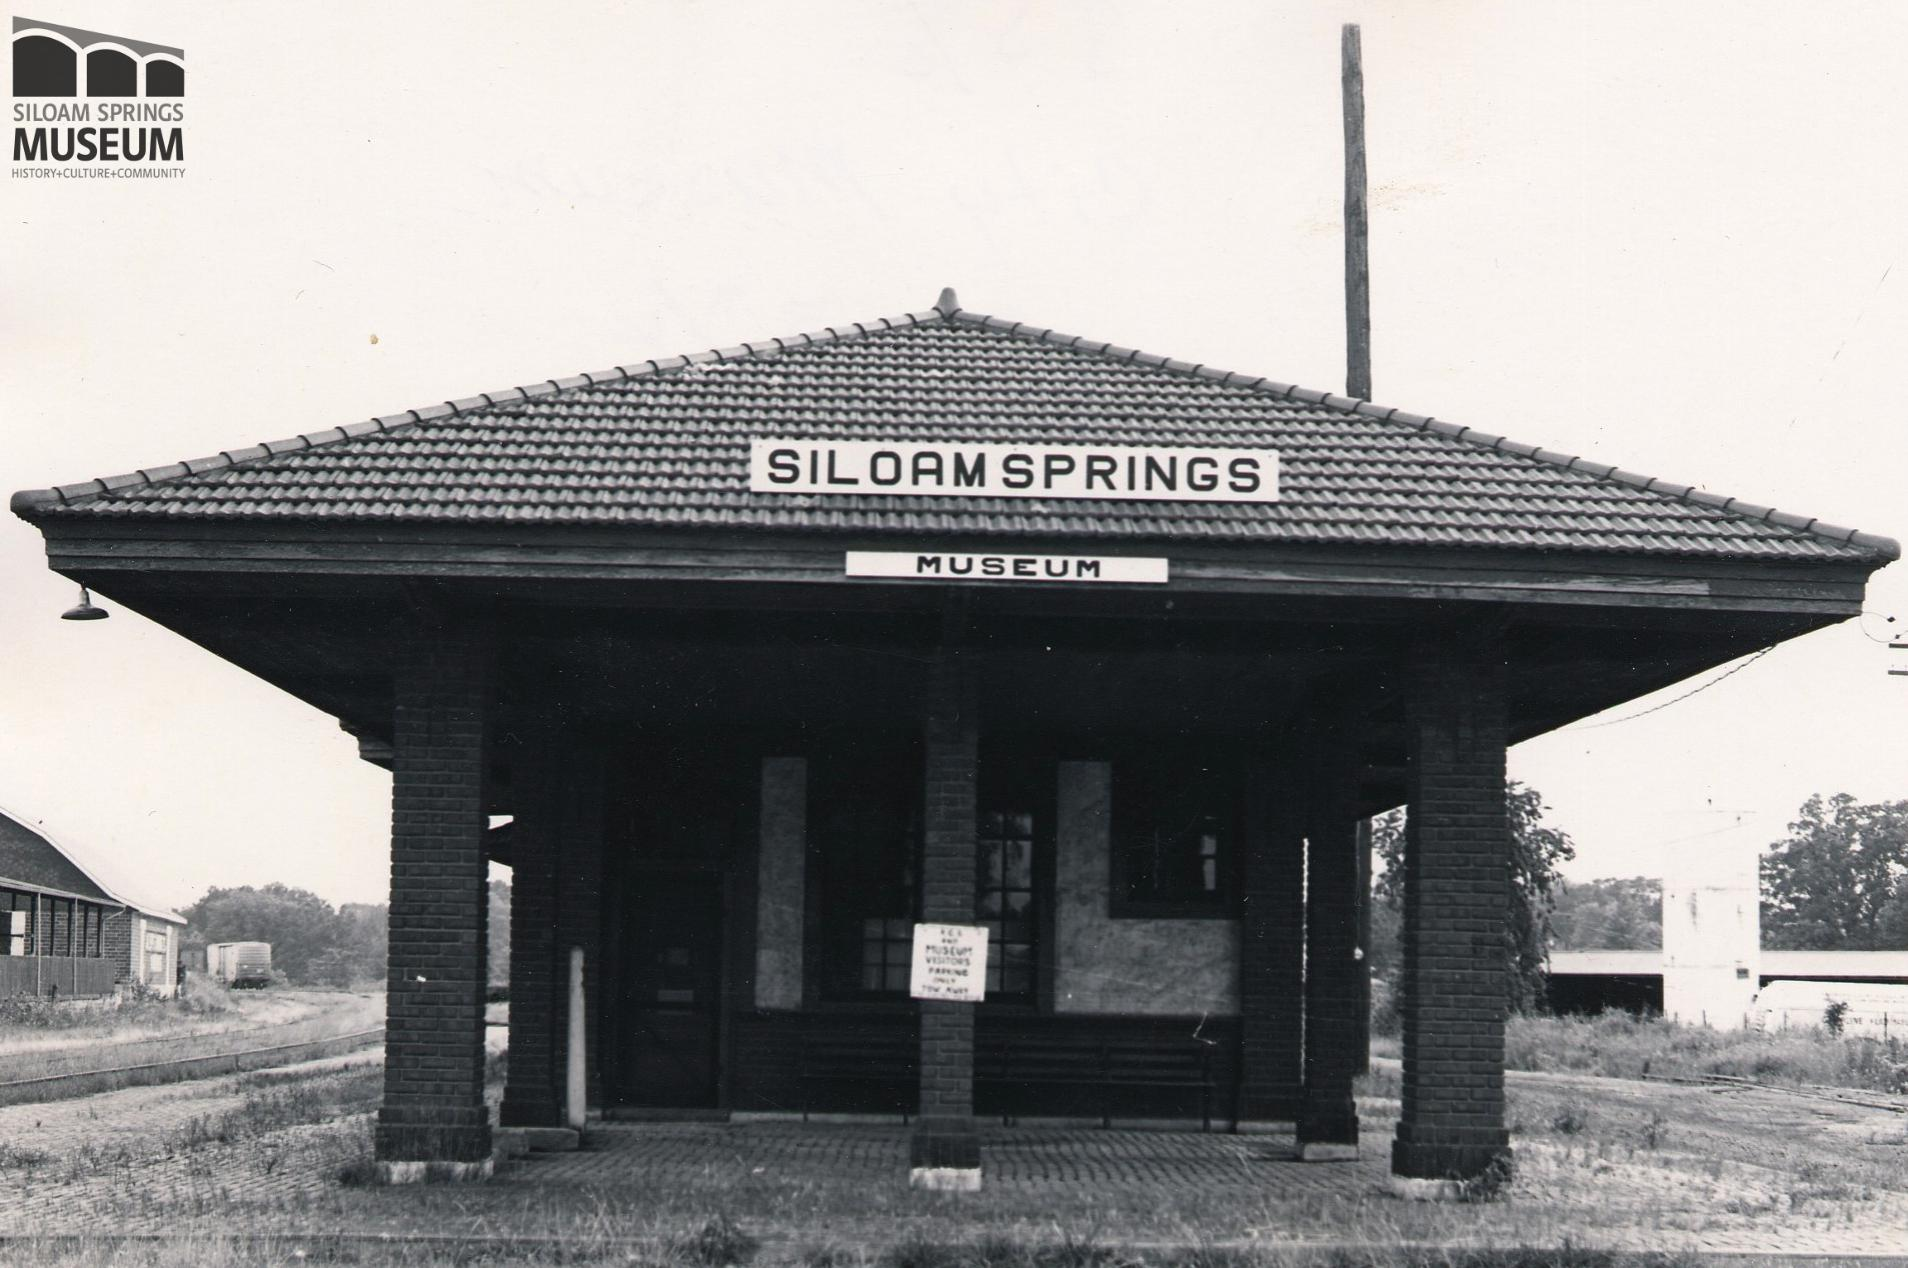 The disused passenger waiting area in the Kansas City Southern passenger depot served as the first location for the Siloam Springs Museum. This building burned down in the early 1990's, long after the museum moved to its current location.